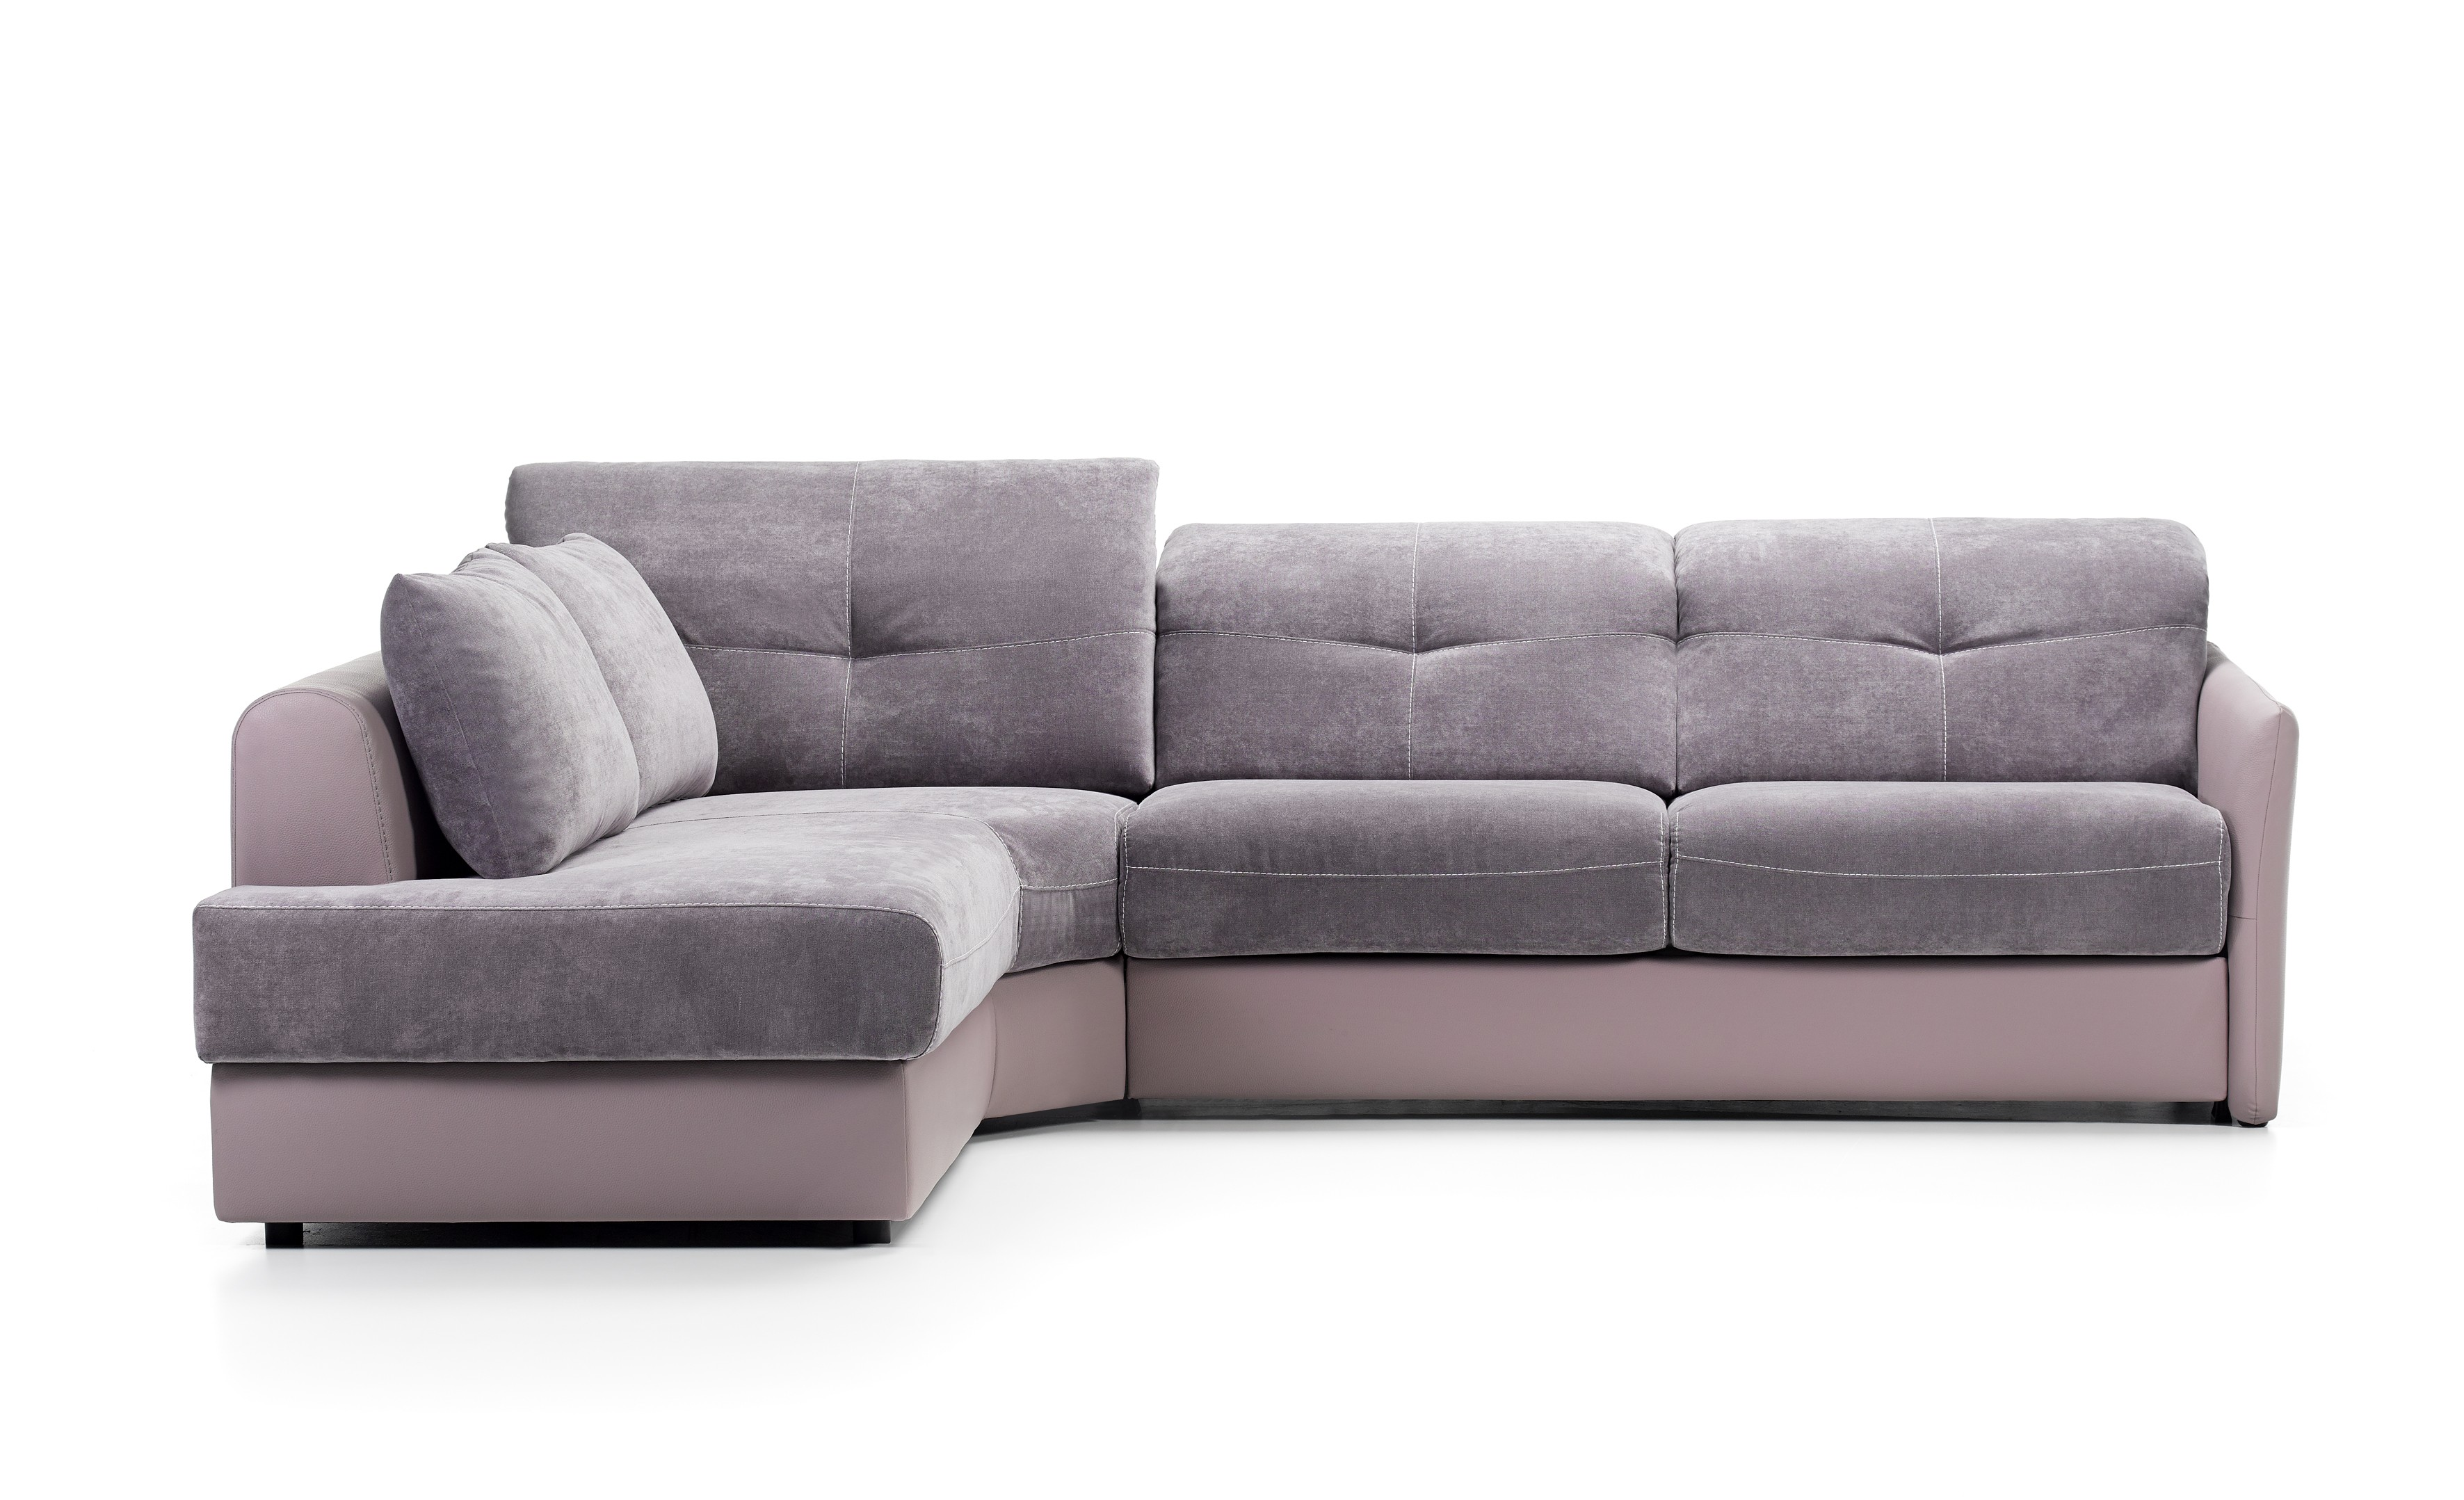 Sirius leather sectional by rom belgium at nova interiors ...